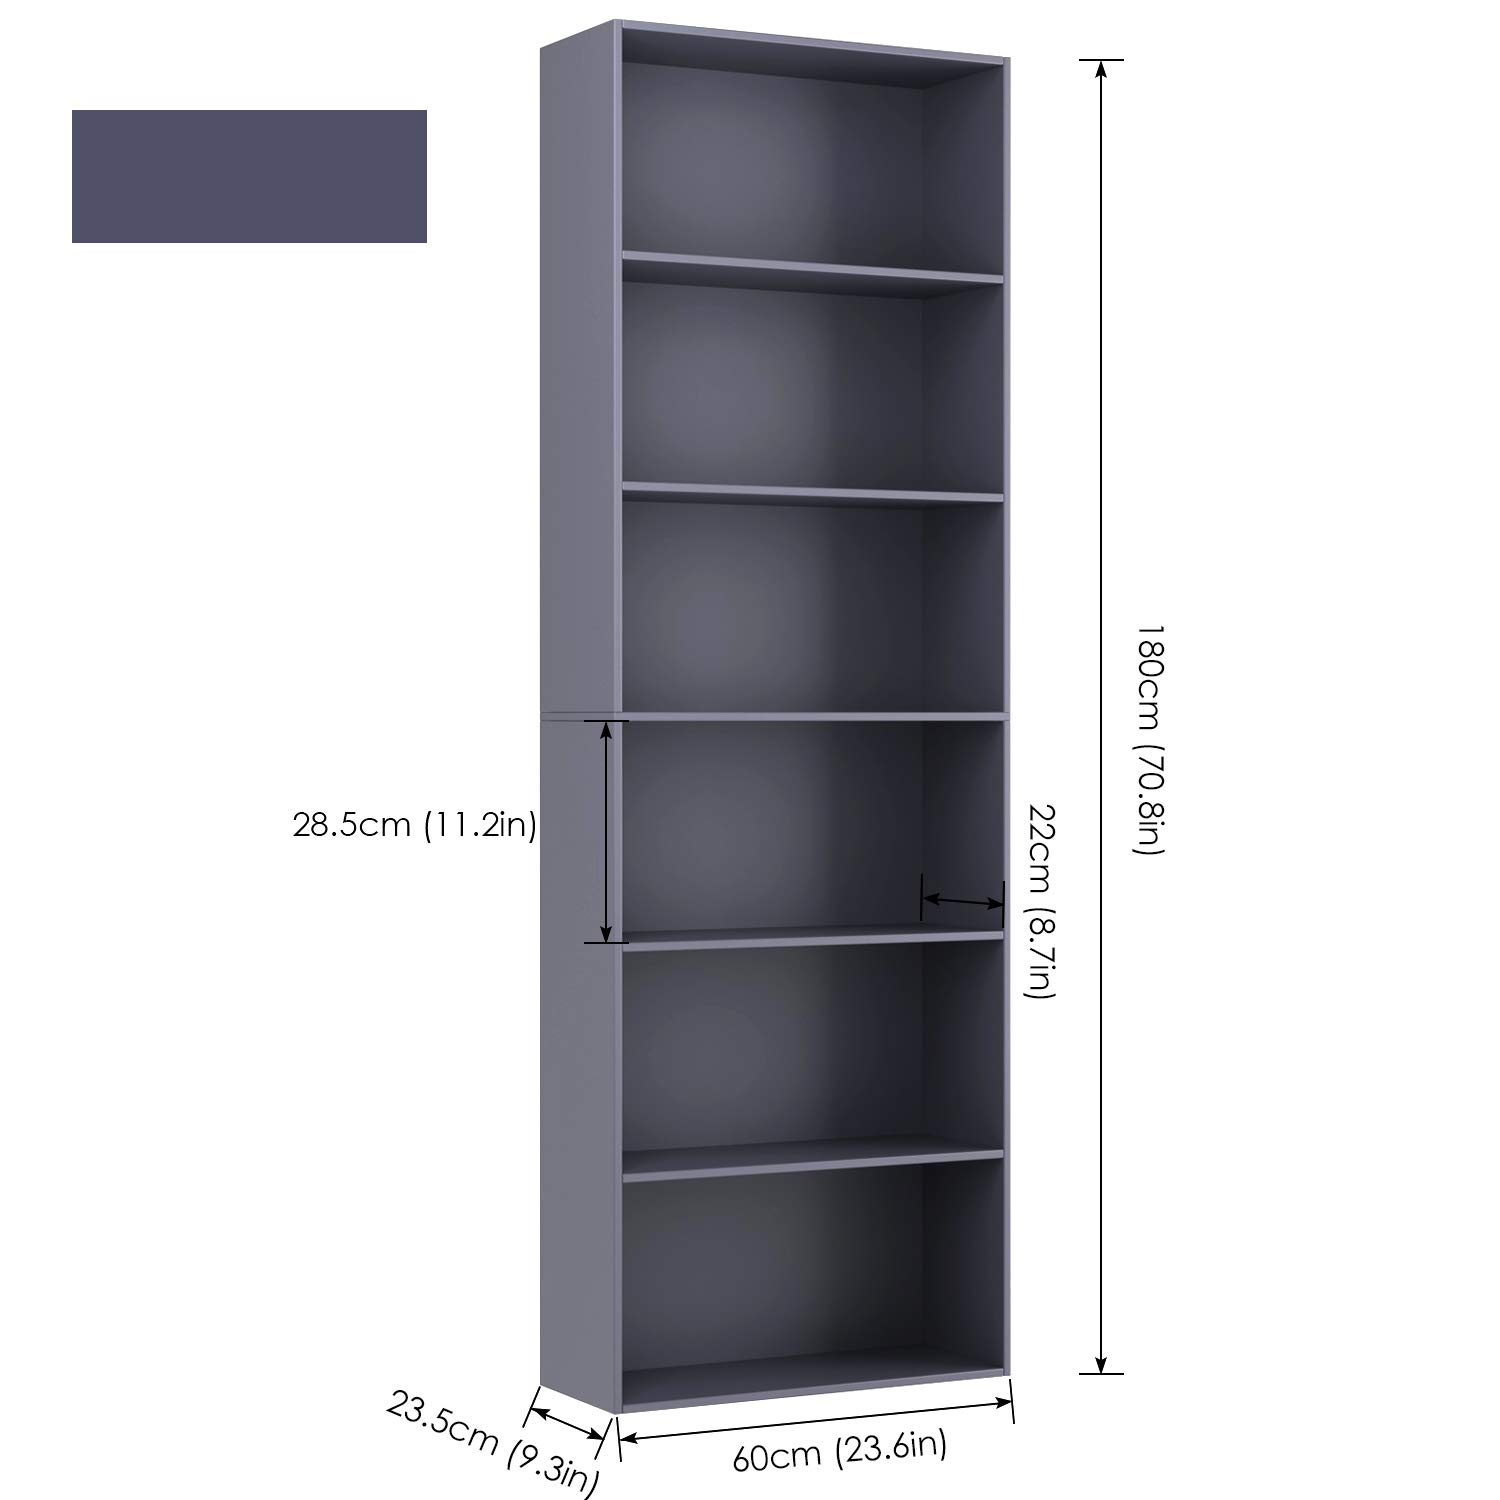 Homfa Bookshelf 70 Height, Wood Bookcase 6 Shelf Free Standing Display Storage Shelves Standard Organization Collection Decor Furniture for Living Room Home Office Gray